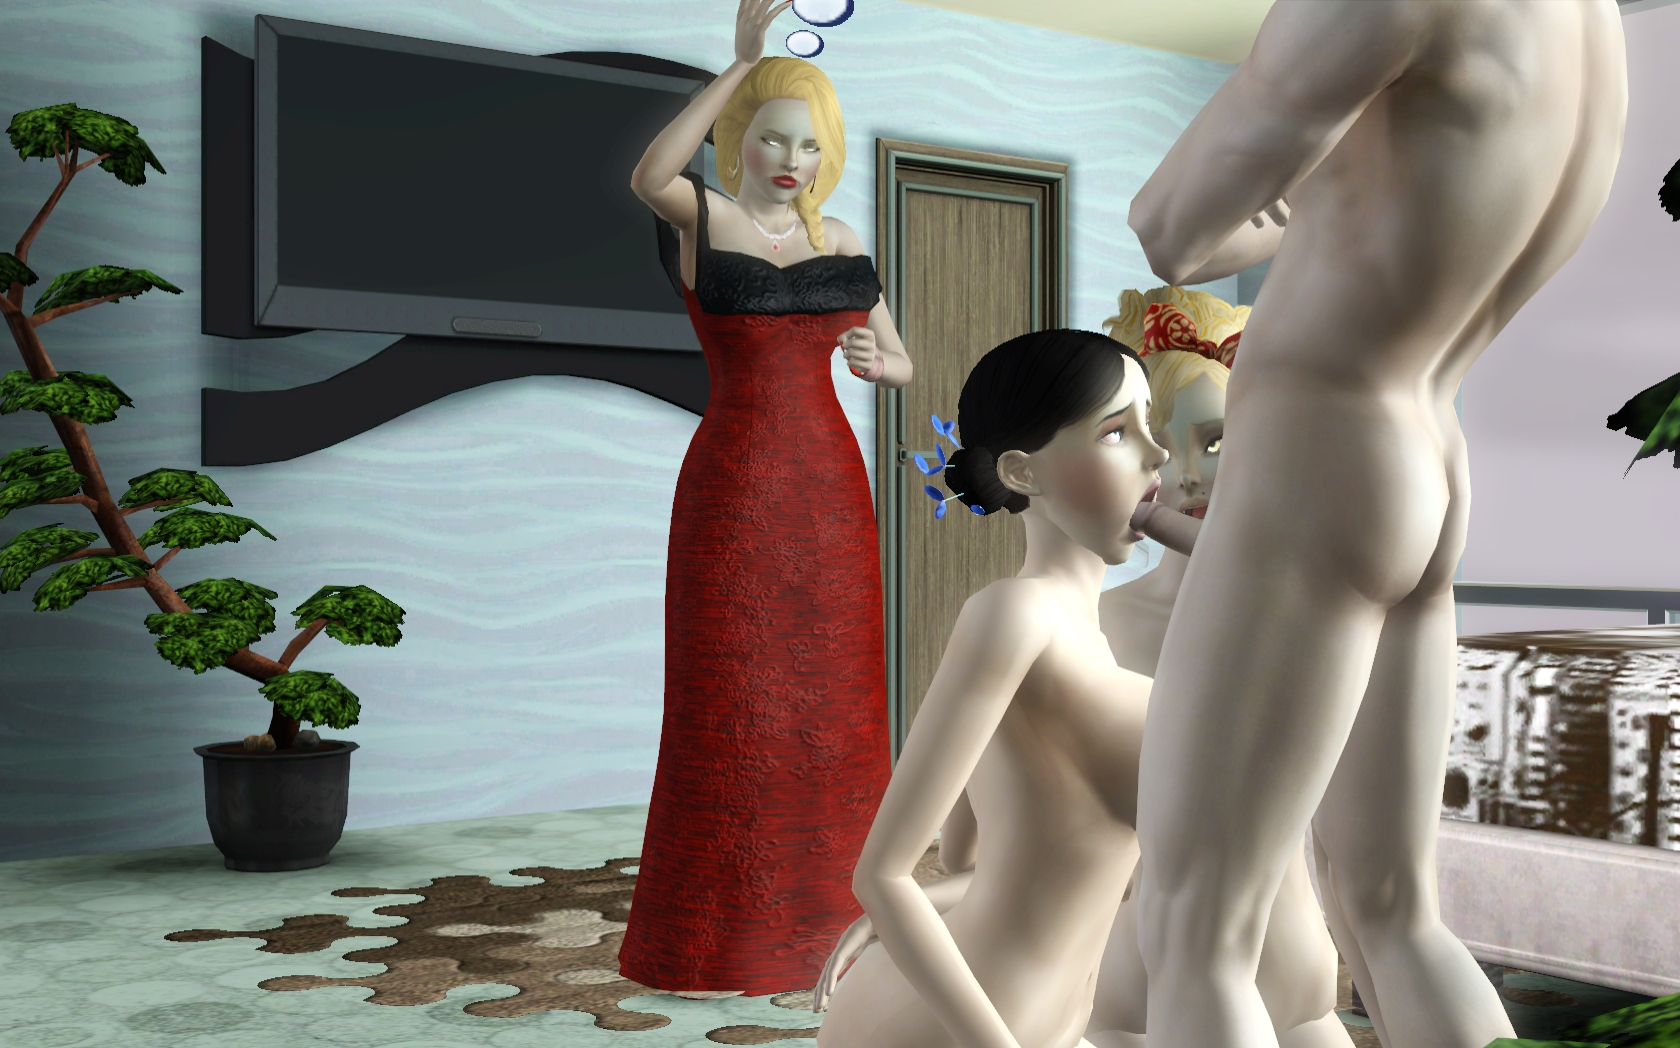 Sims porn game naked download